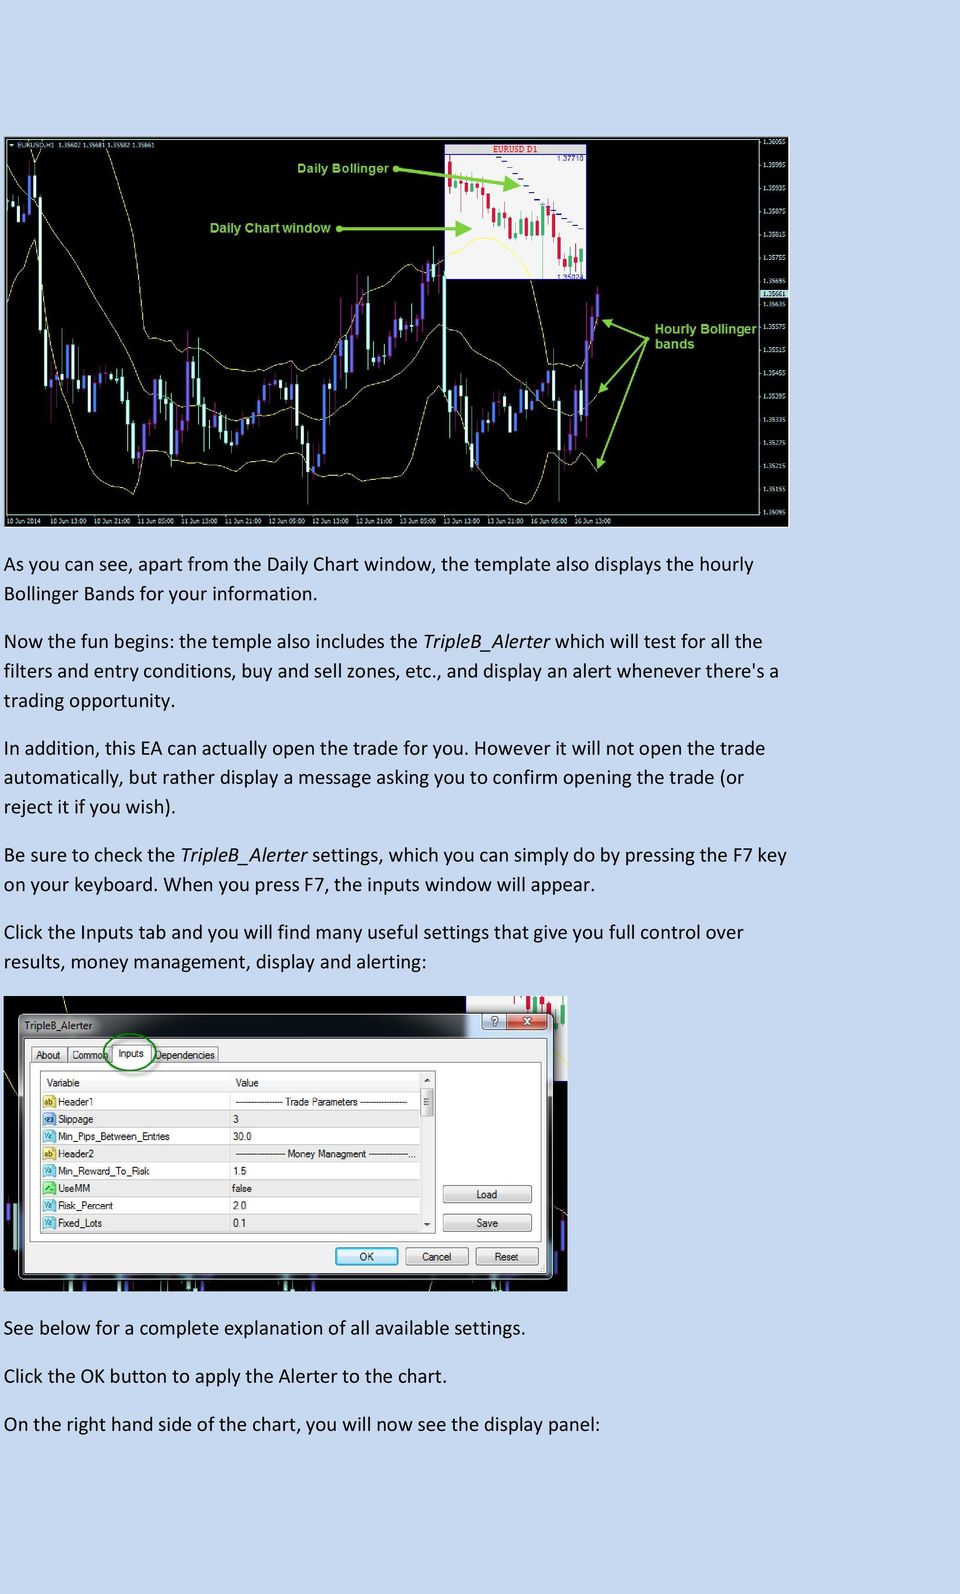 , and display an alert whenever there's a trading opportunity. In addition, this EA can actually open the trade for you.